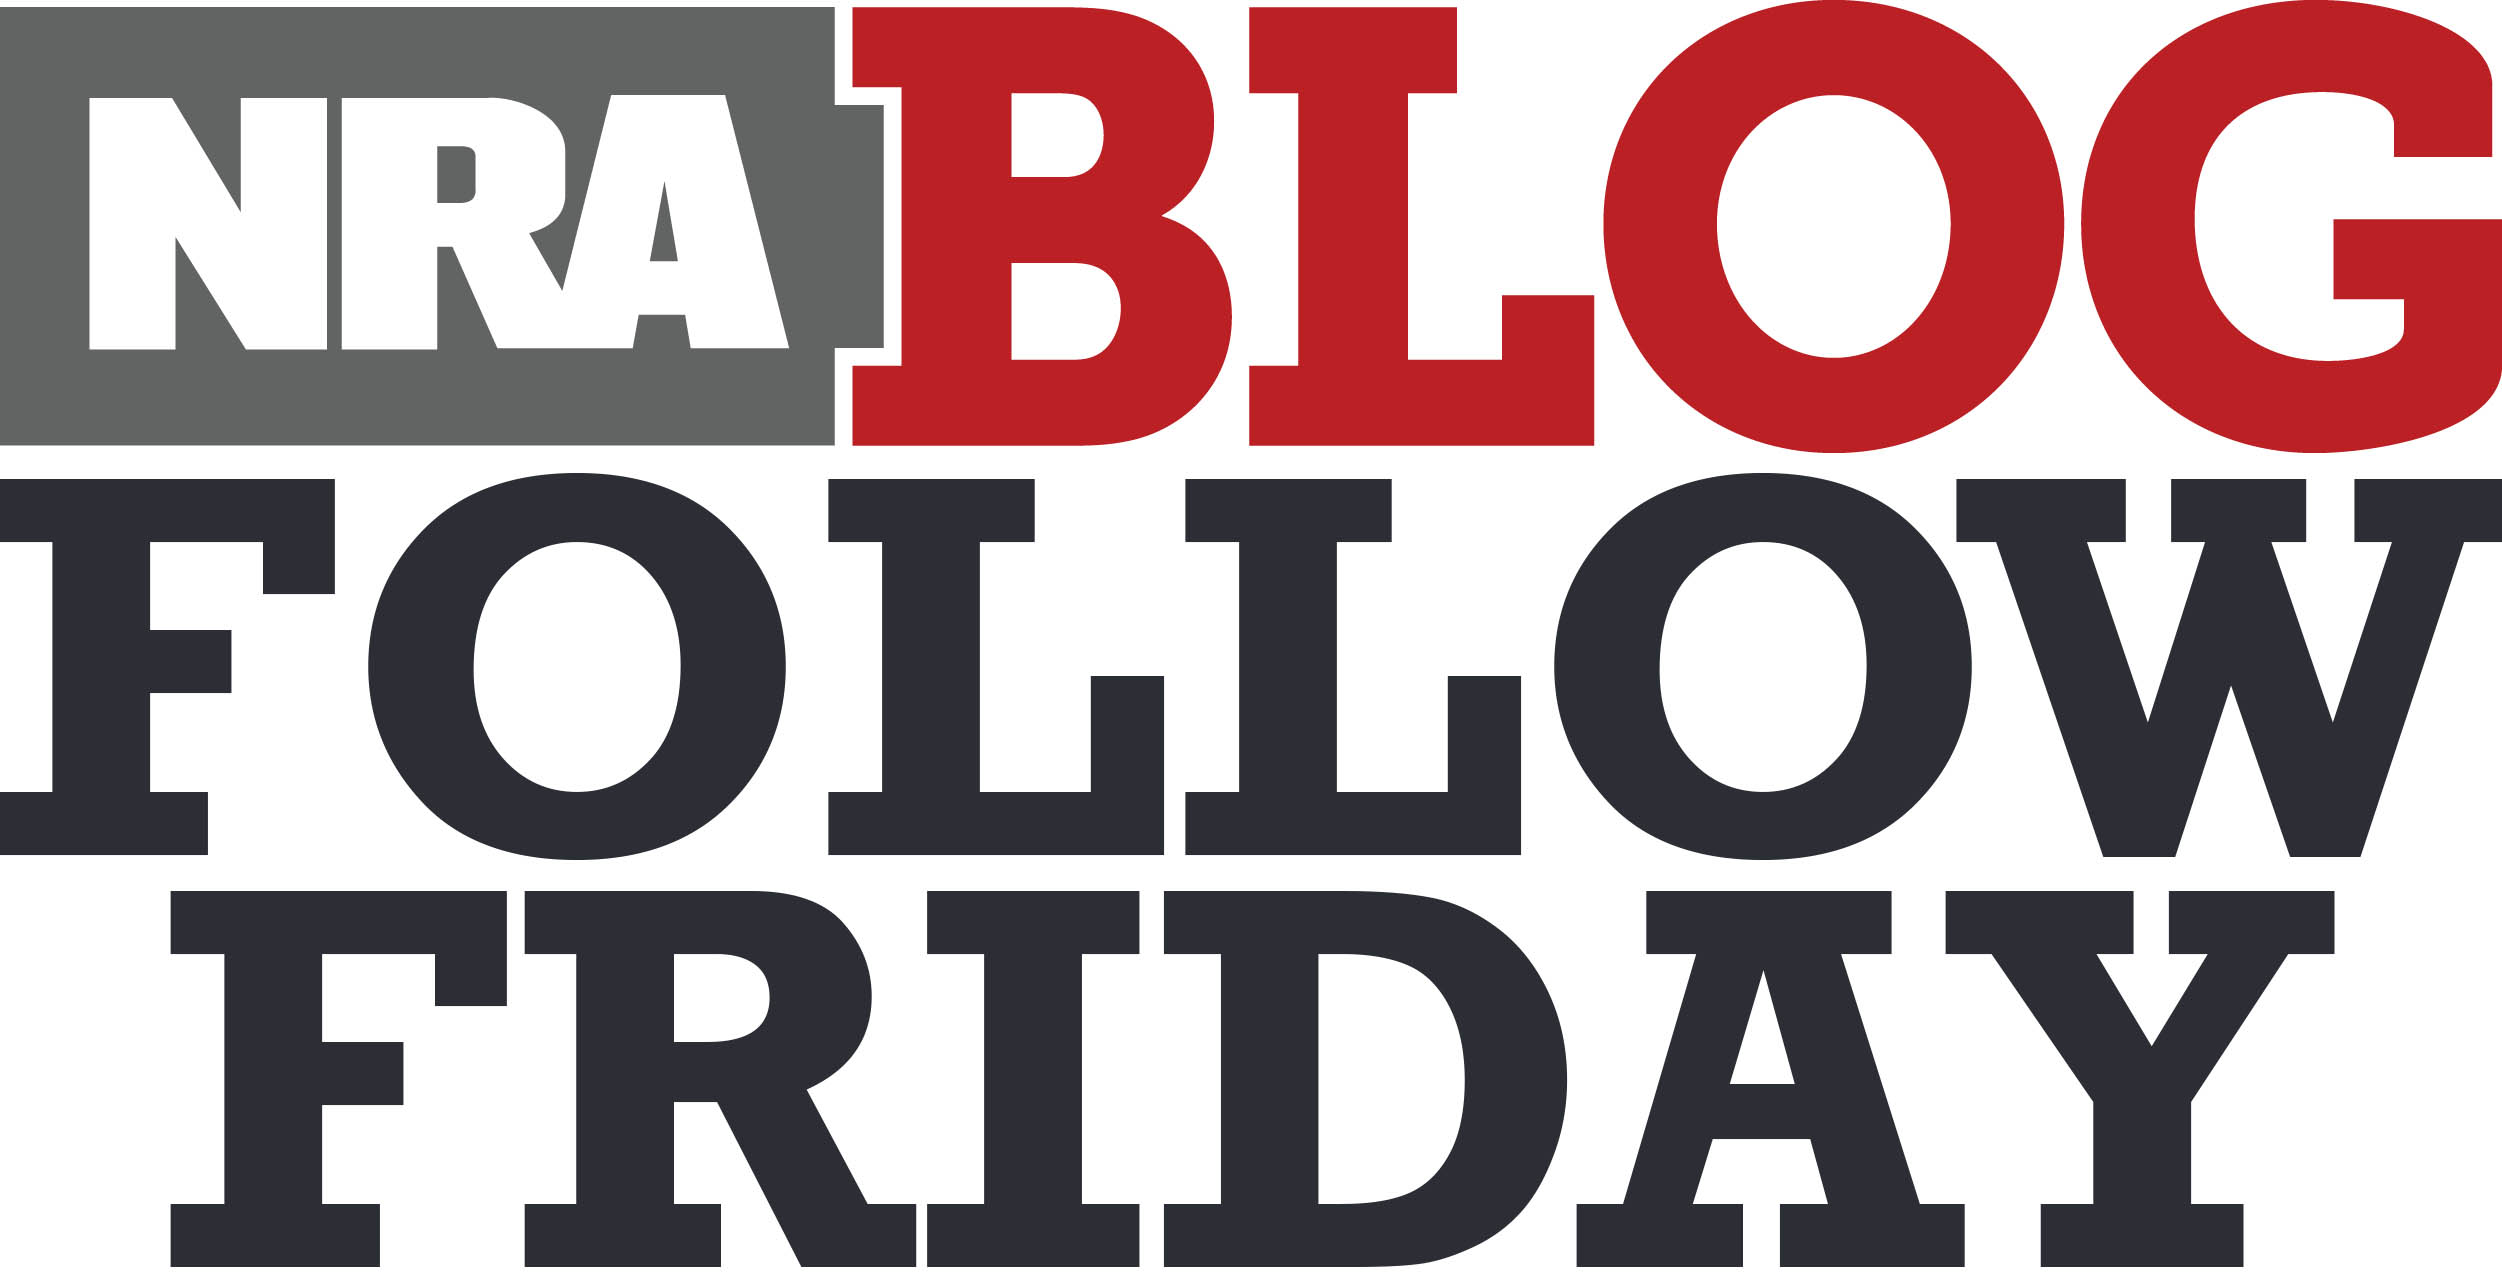 #FollowFriday! Follow NRA Blog and all great NRA accounts on Twitter!